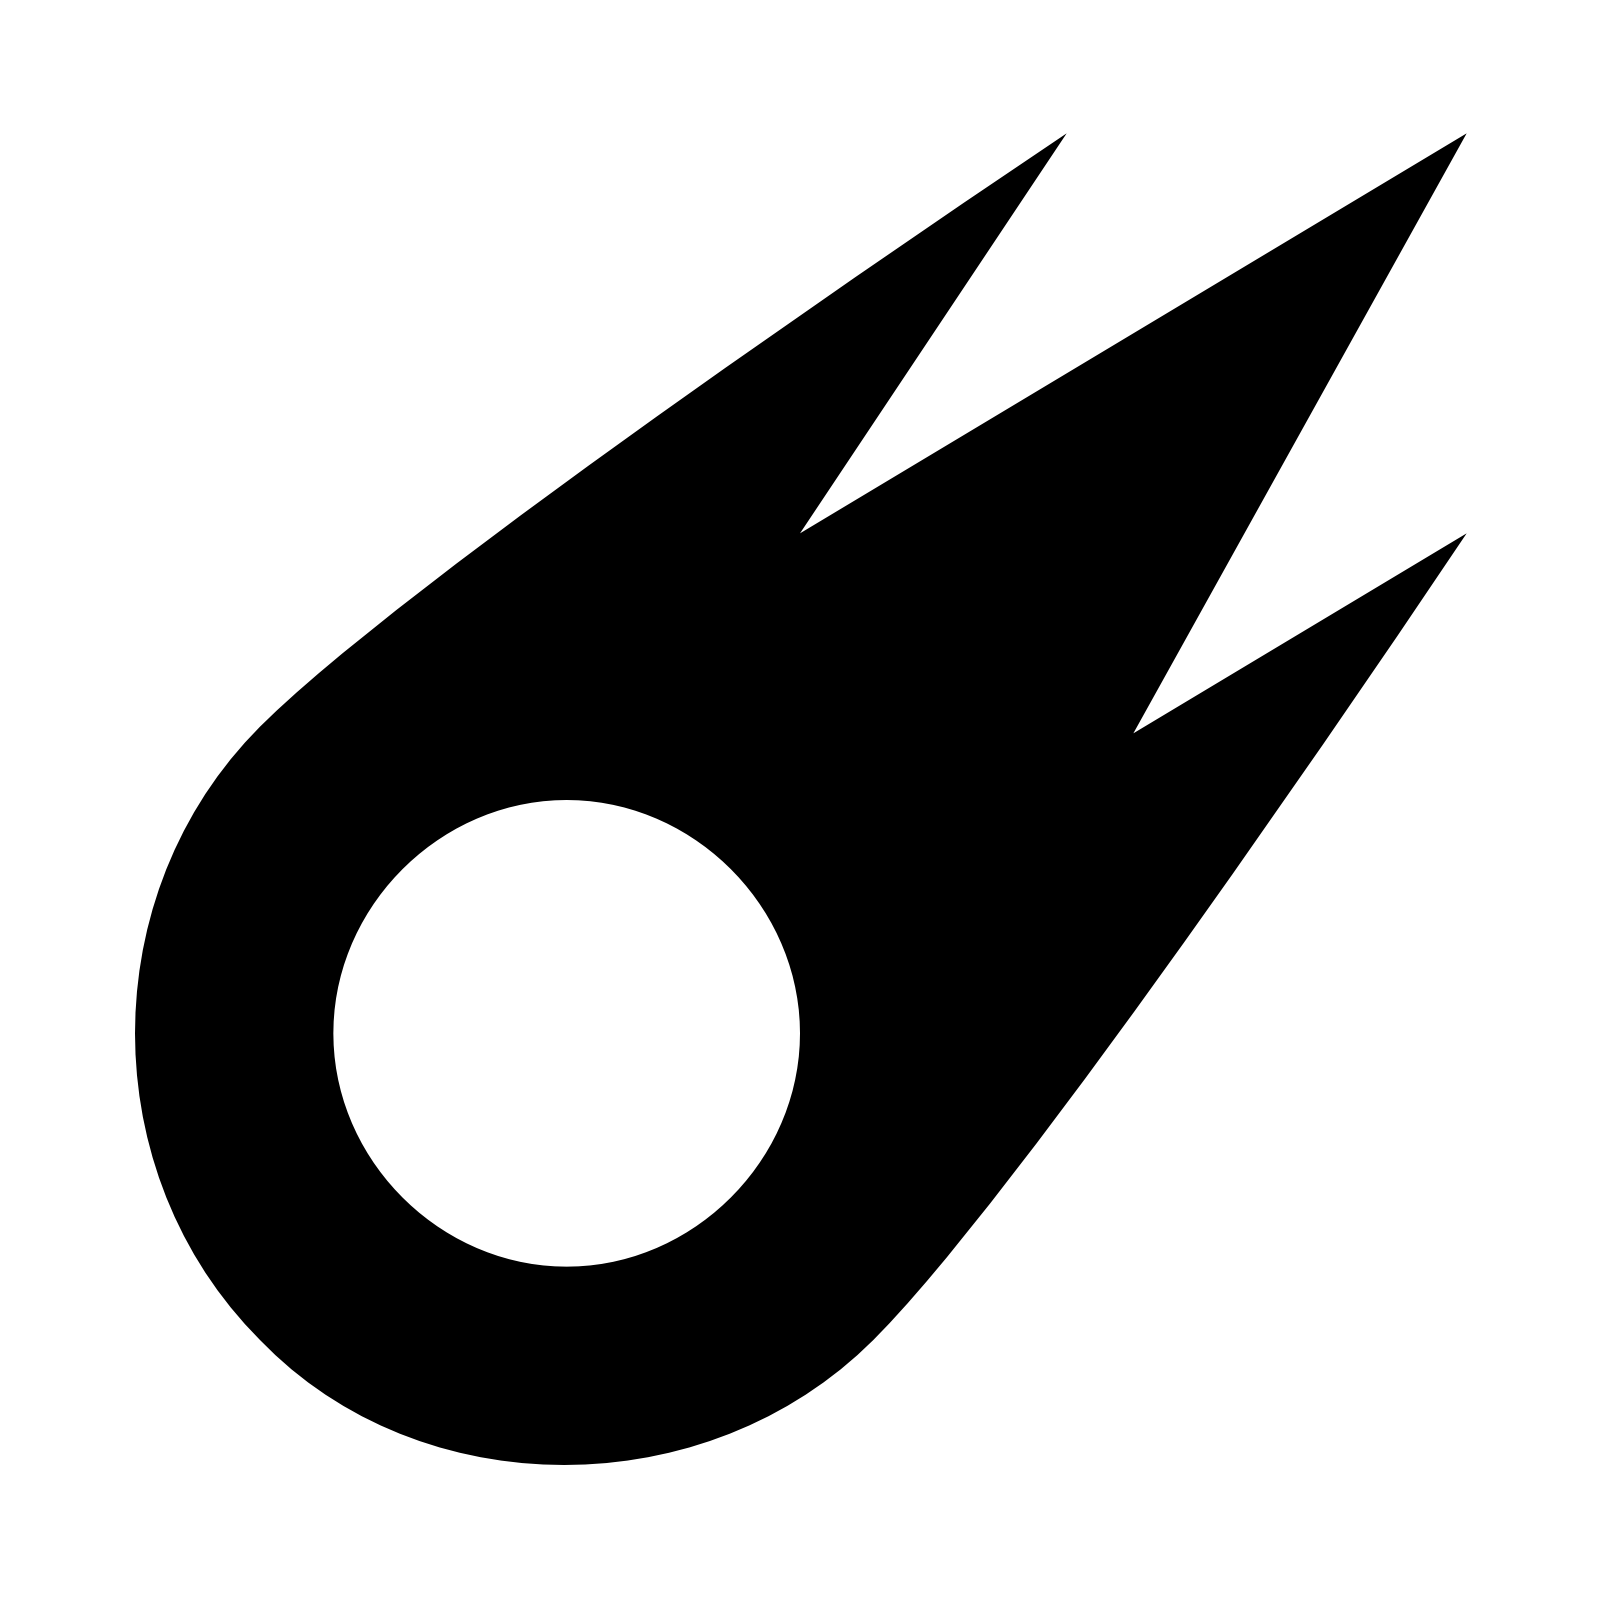 Comet free on dumielauxepices. Meteor clipart flaming